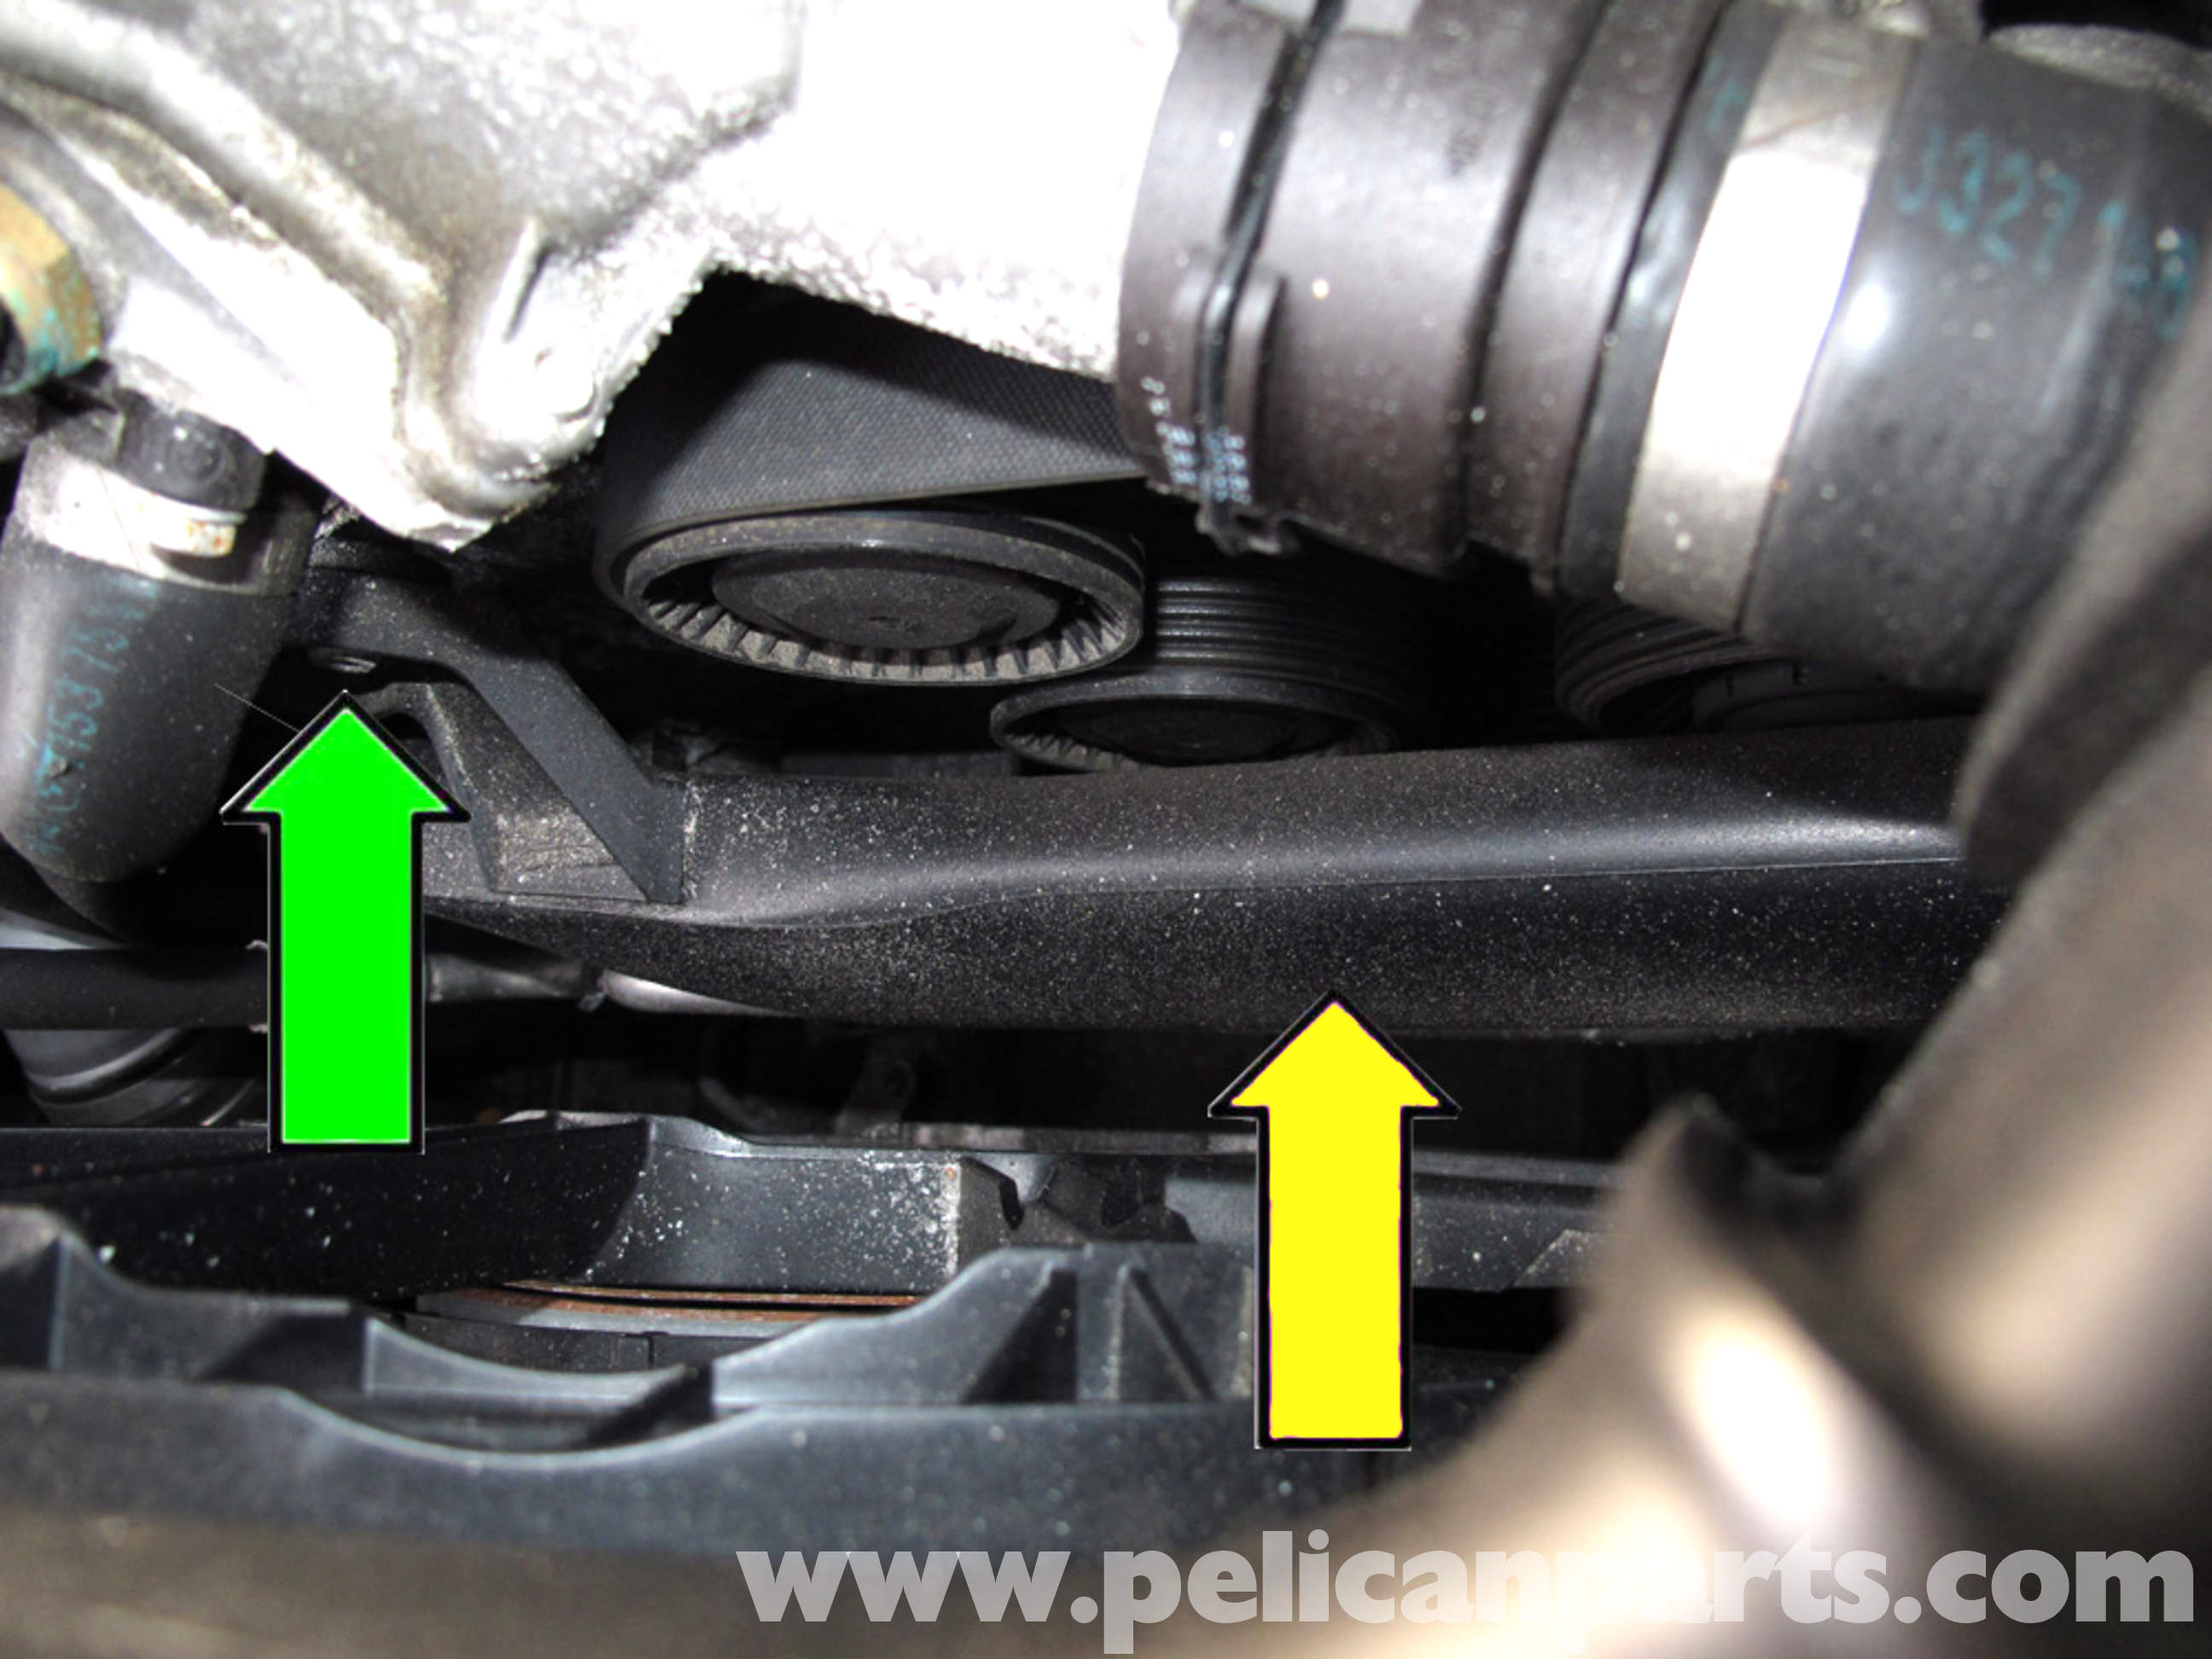 Bmw S65 Engine Diagram E90 Drive Belt Replacement E91 E92 E93 Pelican Parts Diy Large Image Extra